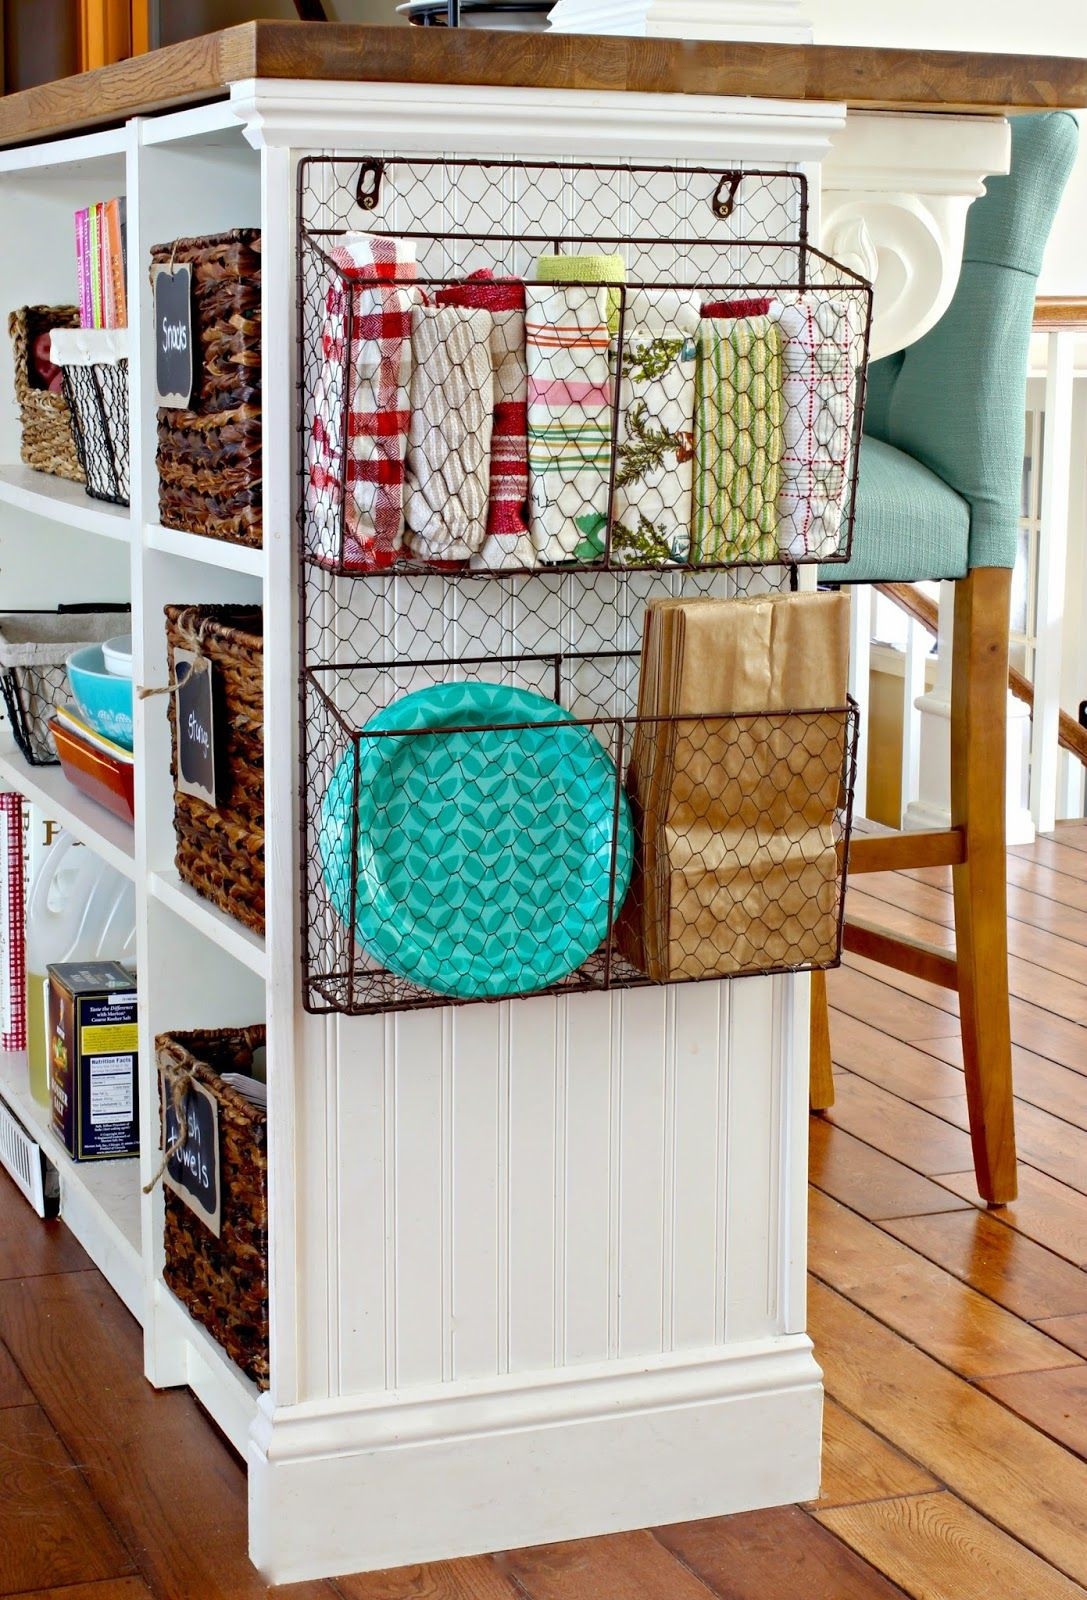 Best ideas about DIY Kitchen Shelving Ideas . Save or Pin DIY Kitchen Decor on Pinterest Now.